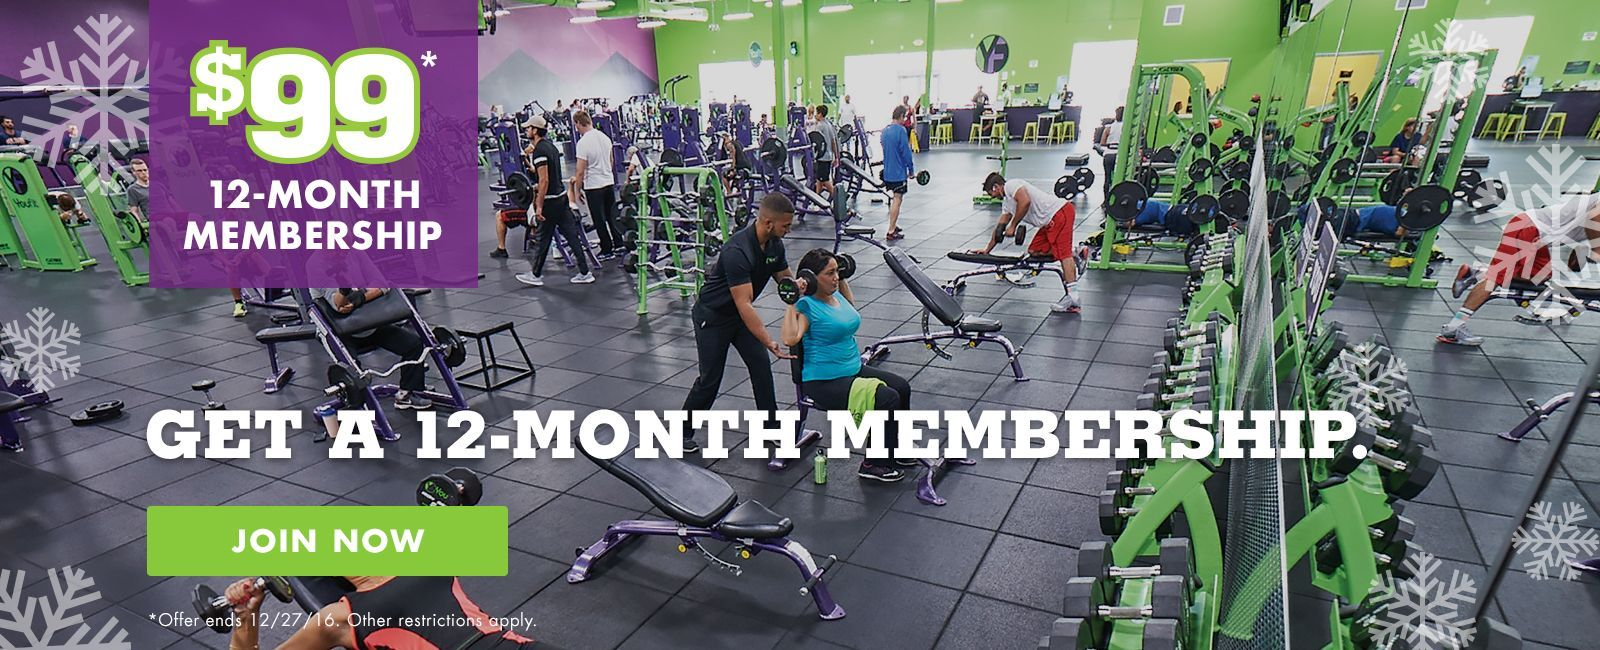 Youfit health clubs near me